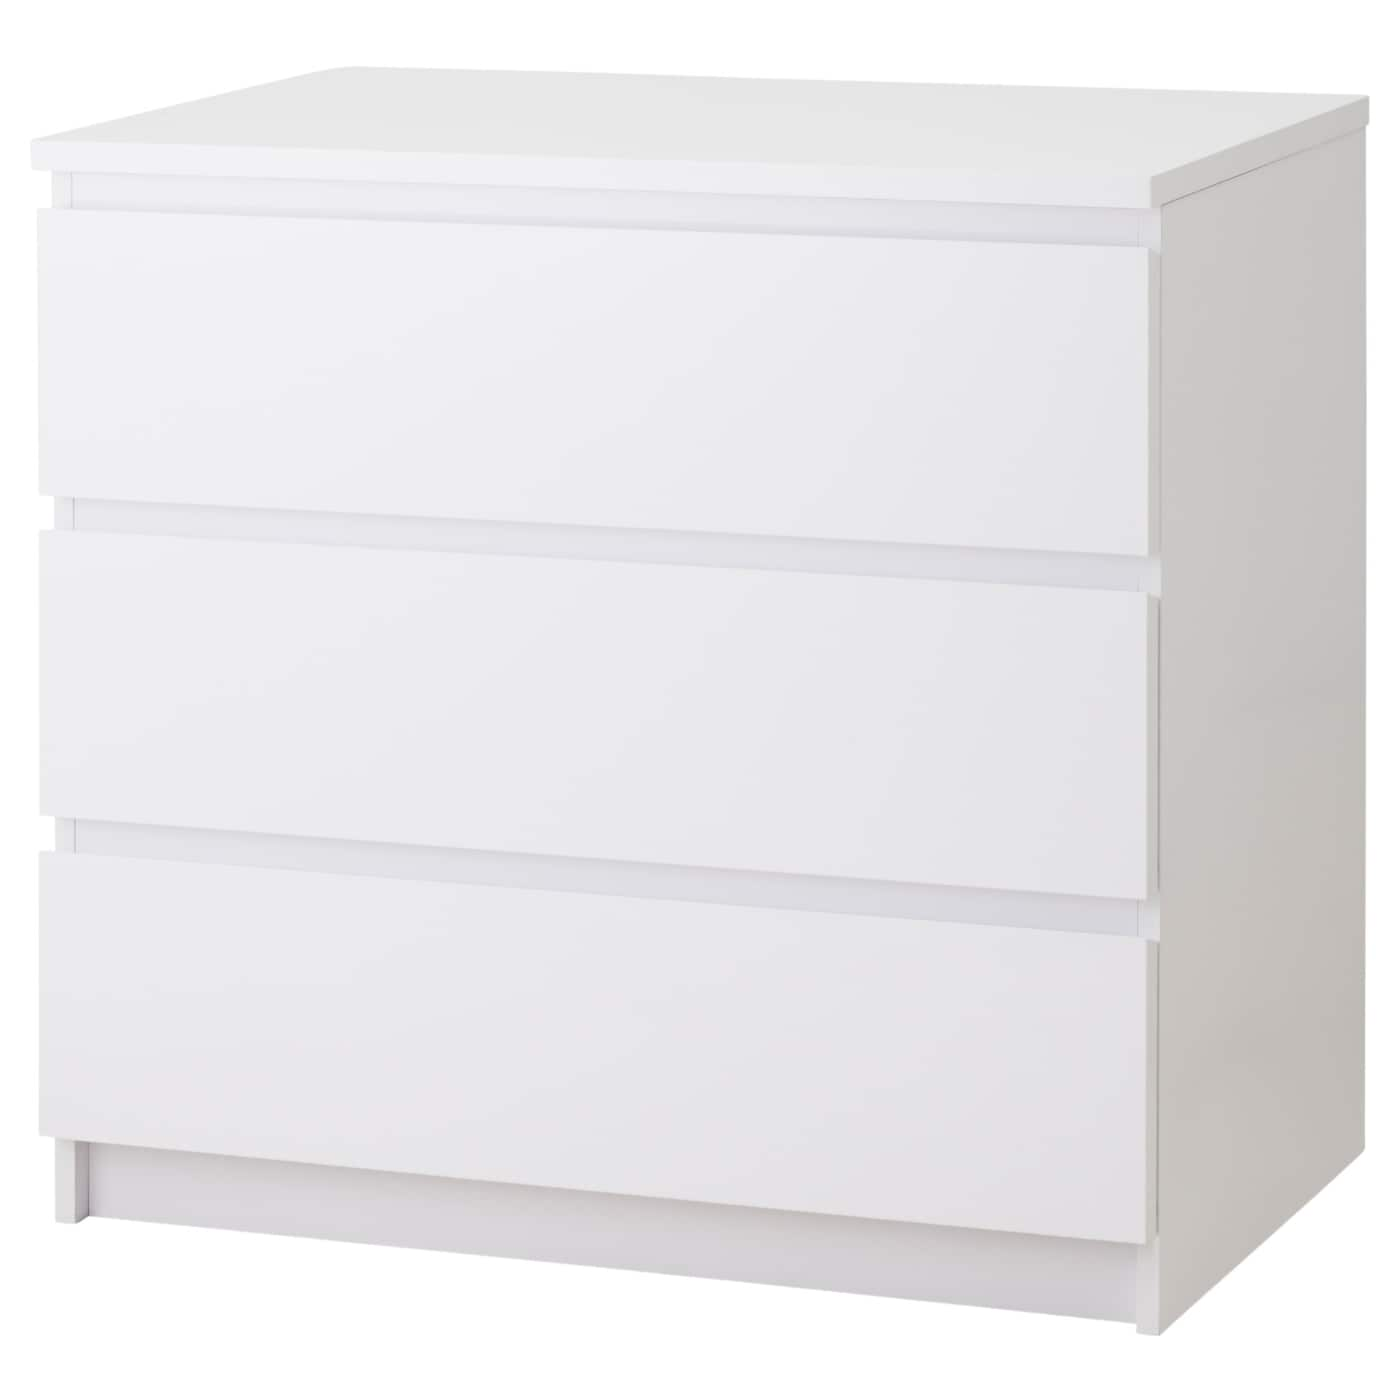 IKEA MALM chest of 3 drawers Extra roomy drawers; more space for storage.